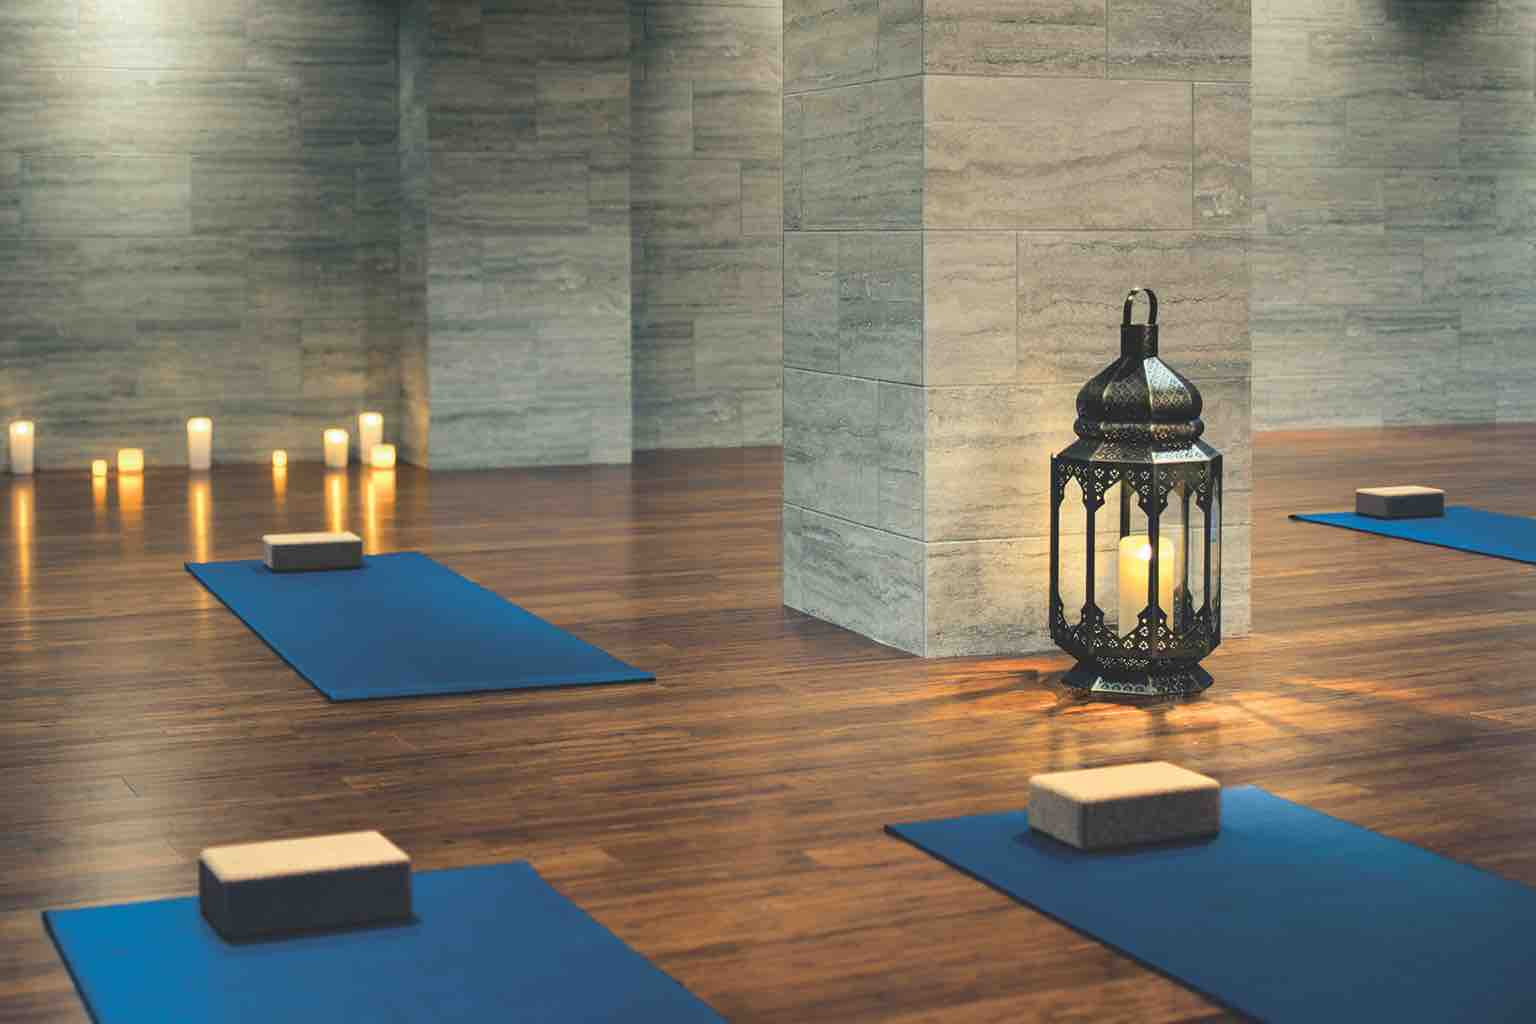 Blue yoga mats, each equipped with a yoga brick, lined up on the wood floor of a candlelit studio